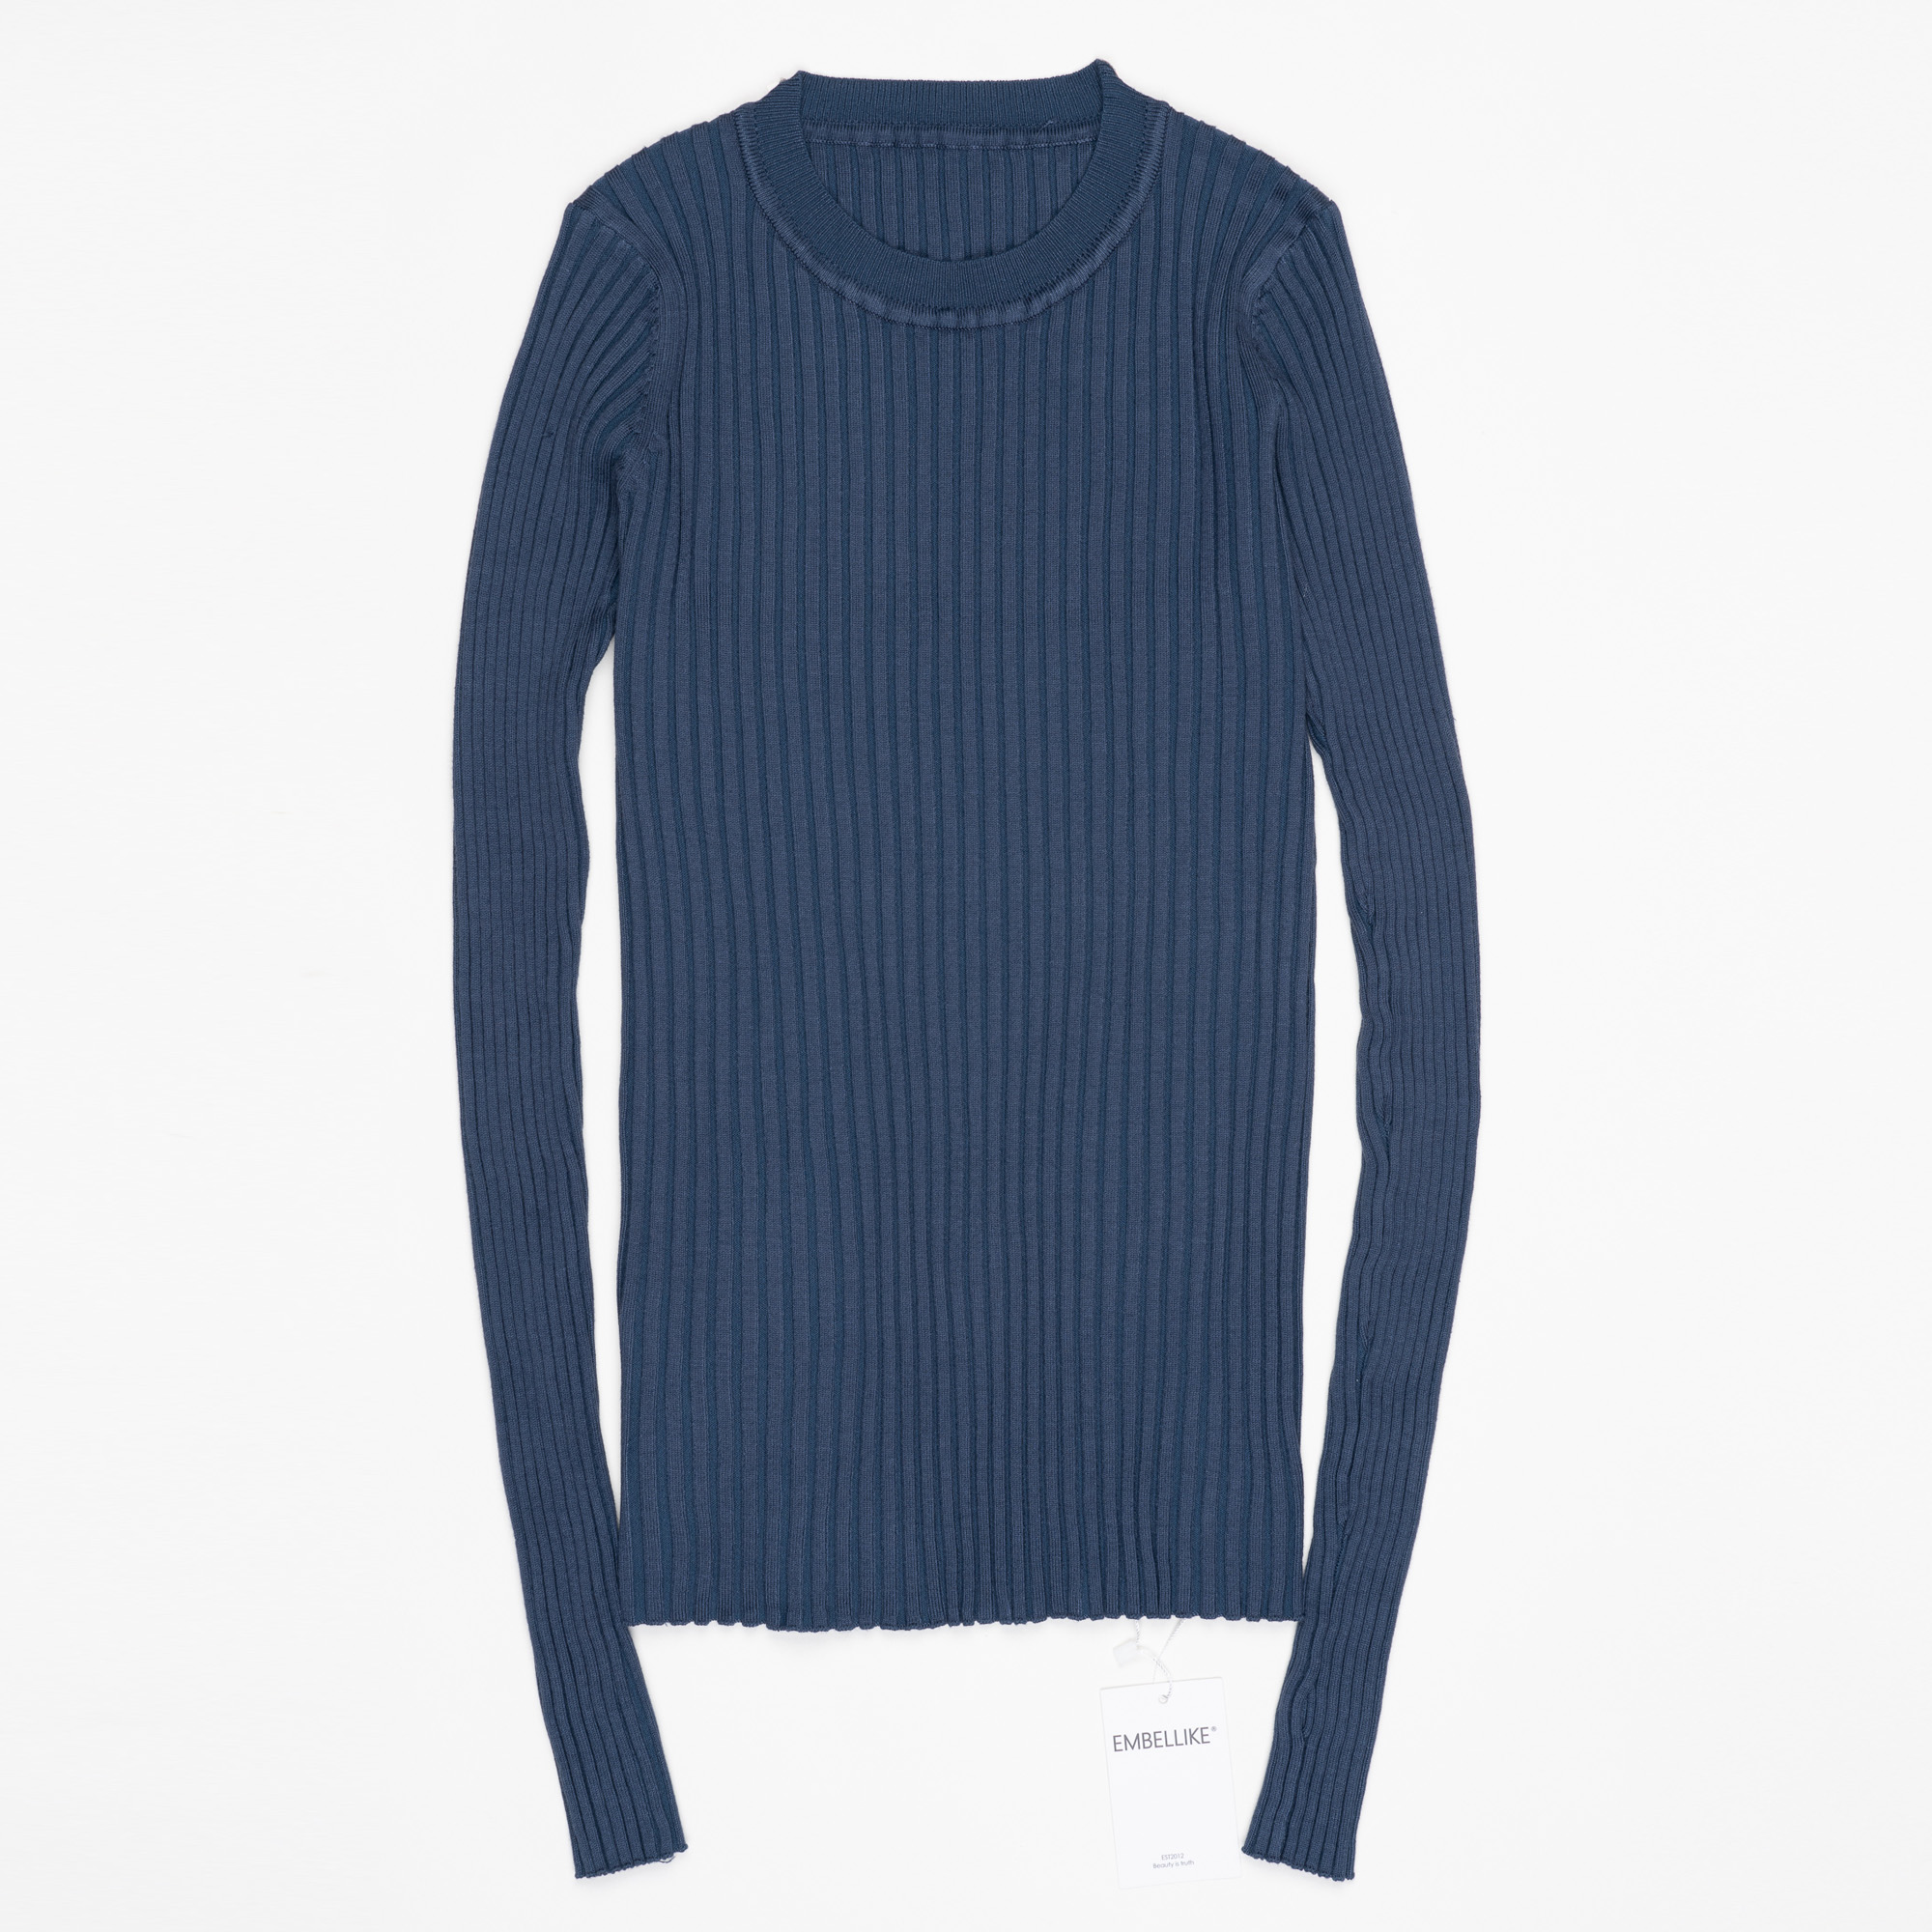 Women Sweater Pullover Basic Ribbed Sweaters Cotton Tops Knitted Solid Crew Neck With Thumb Hole 21